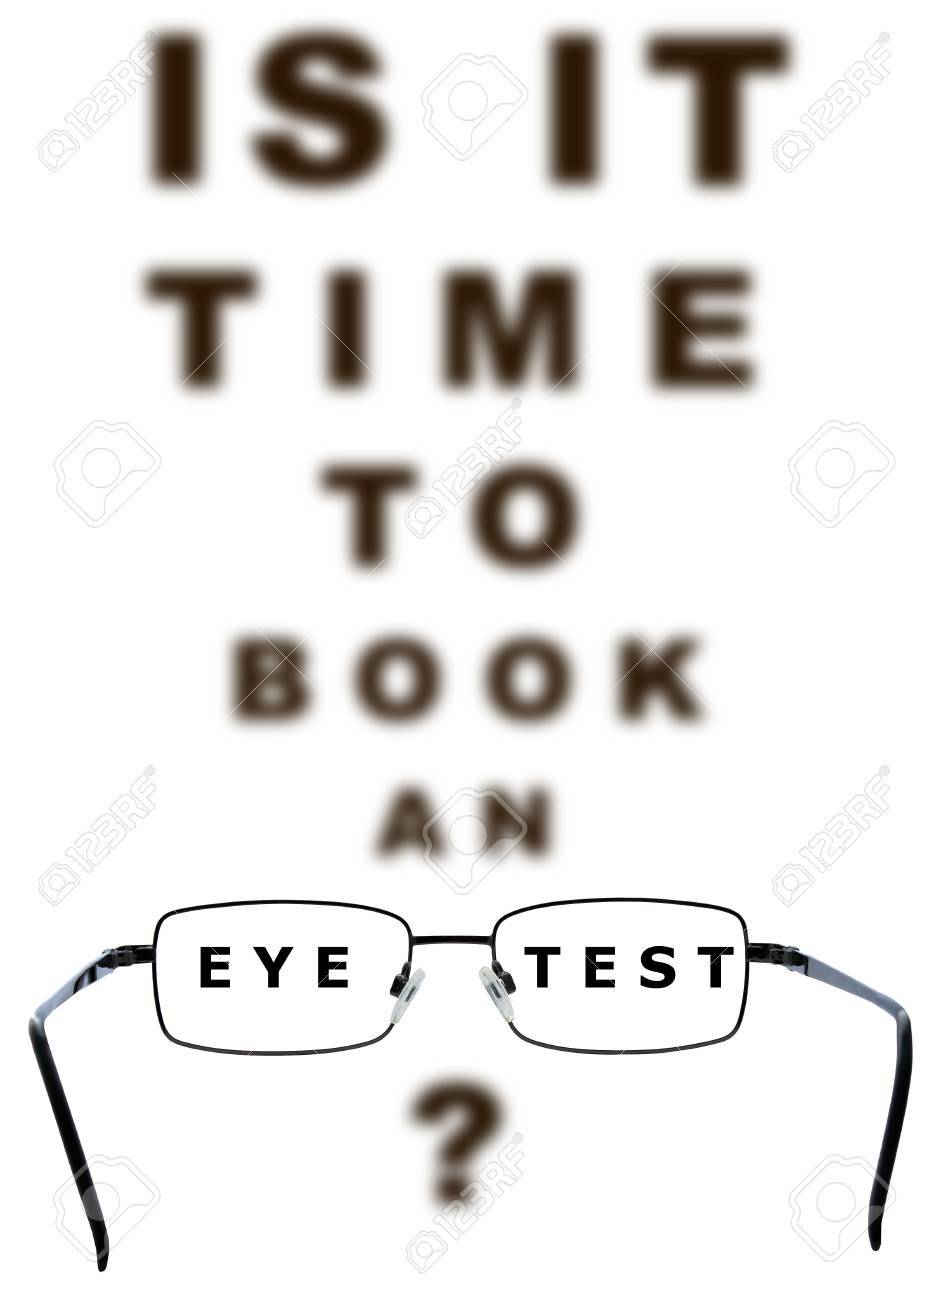 Eye Examination Chart With All The Letters Blurred Apart From